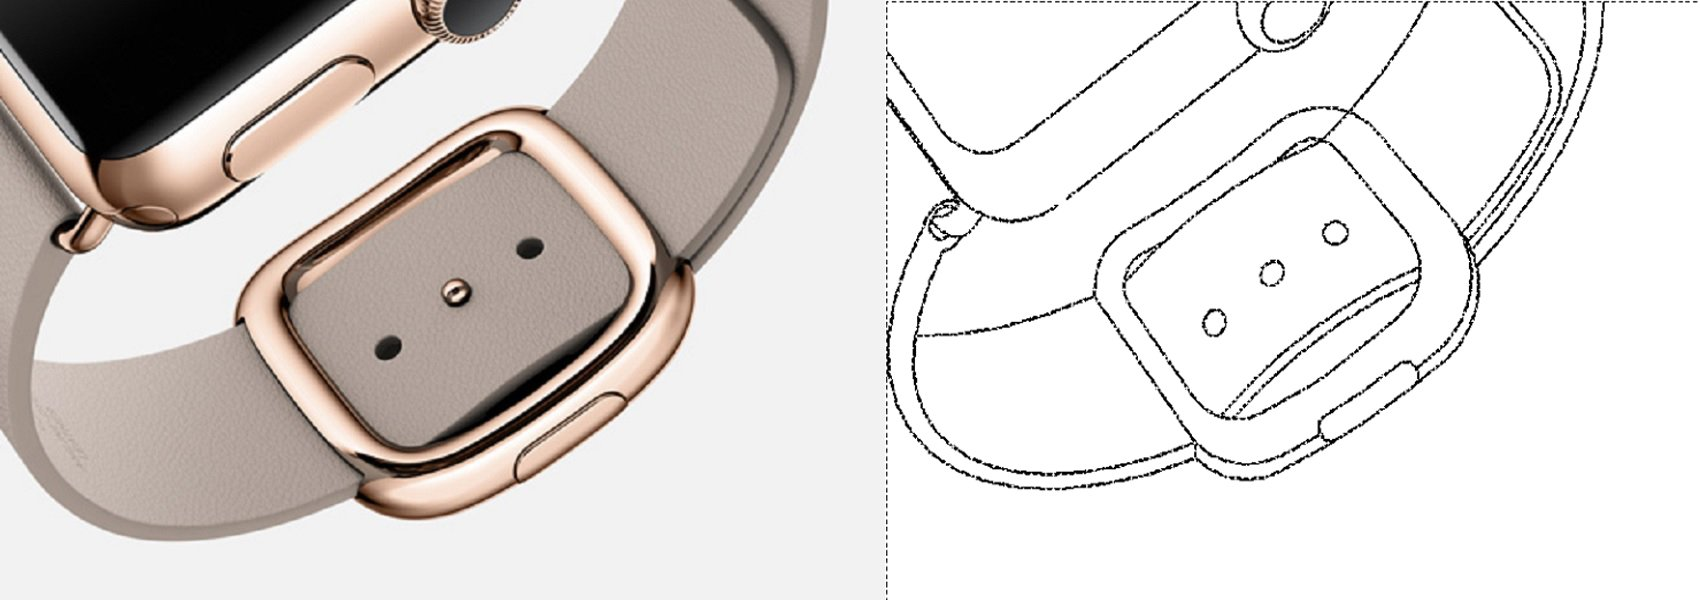 Samsung Wearable Device patent filing Apple Watch Buckle strap 001